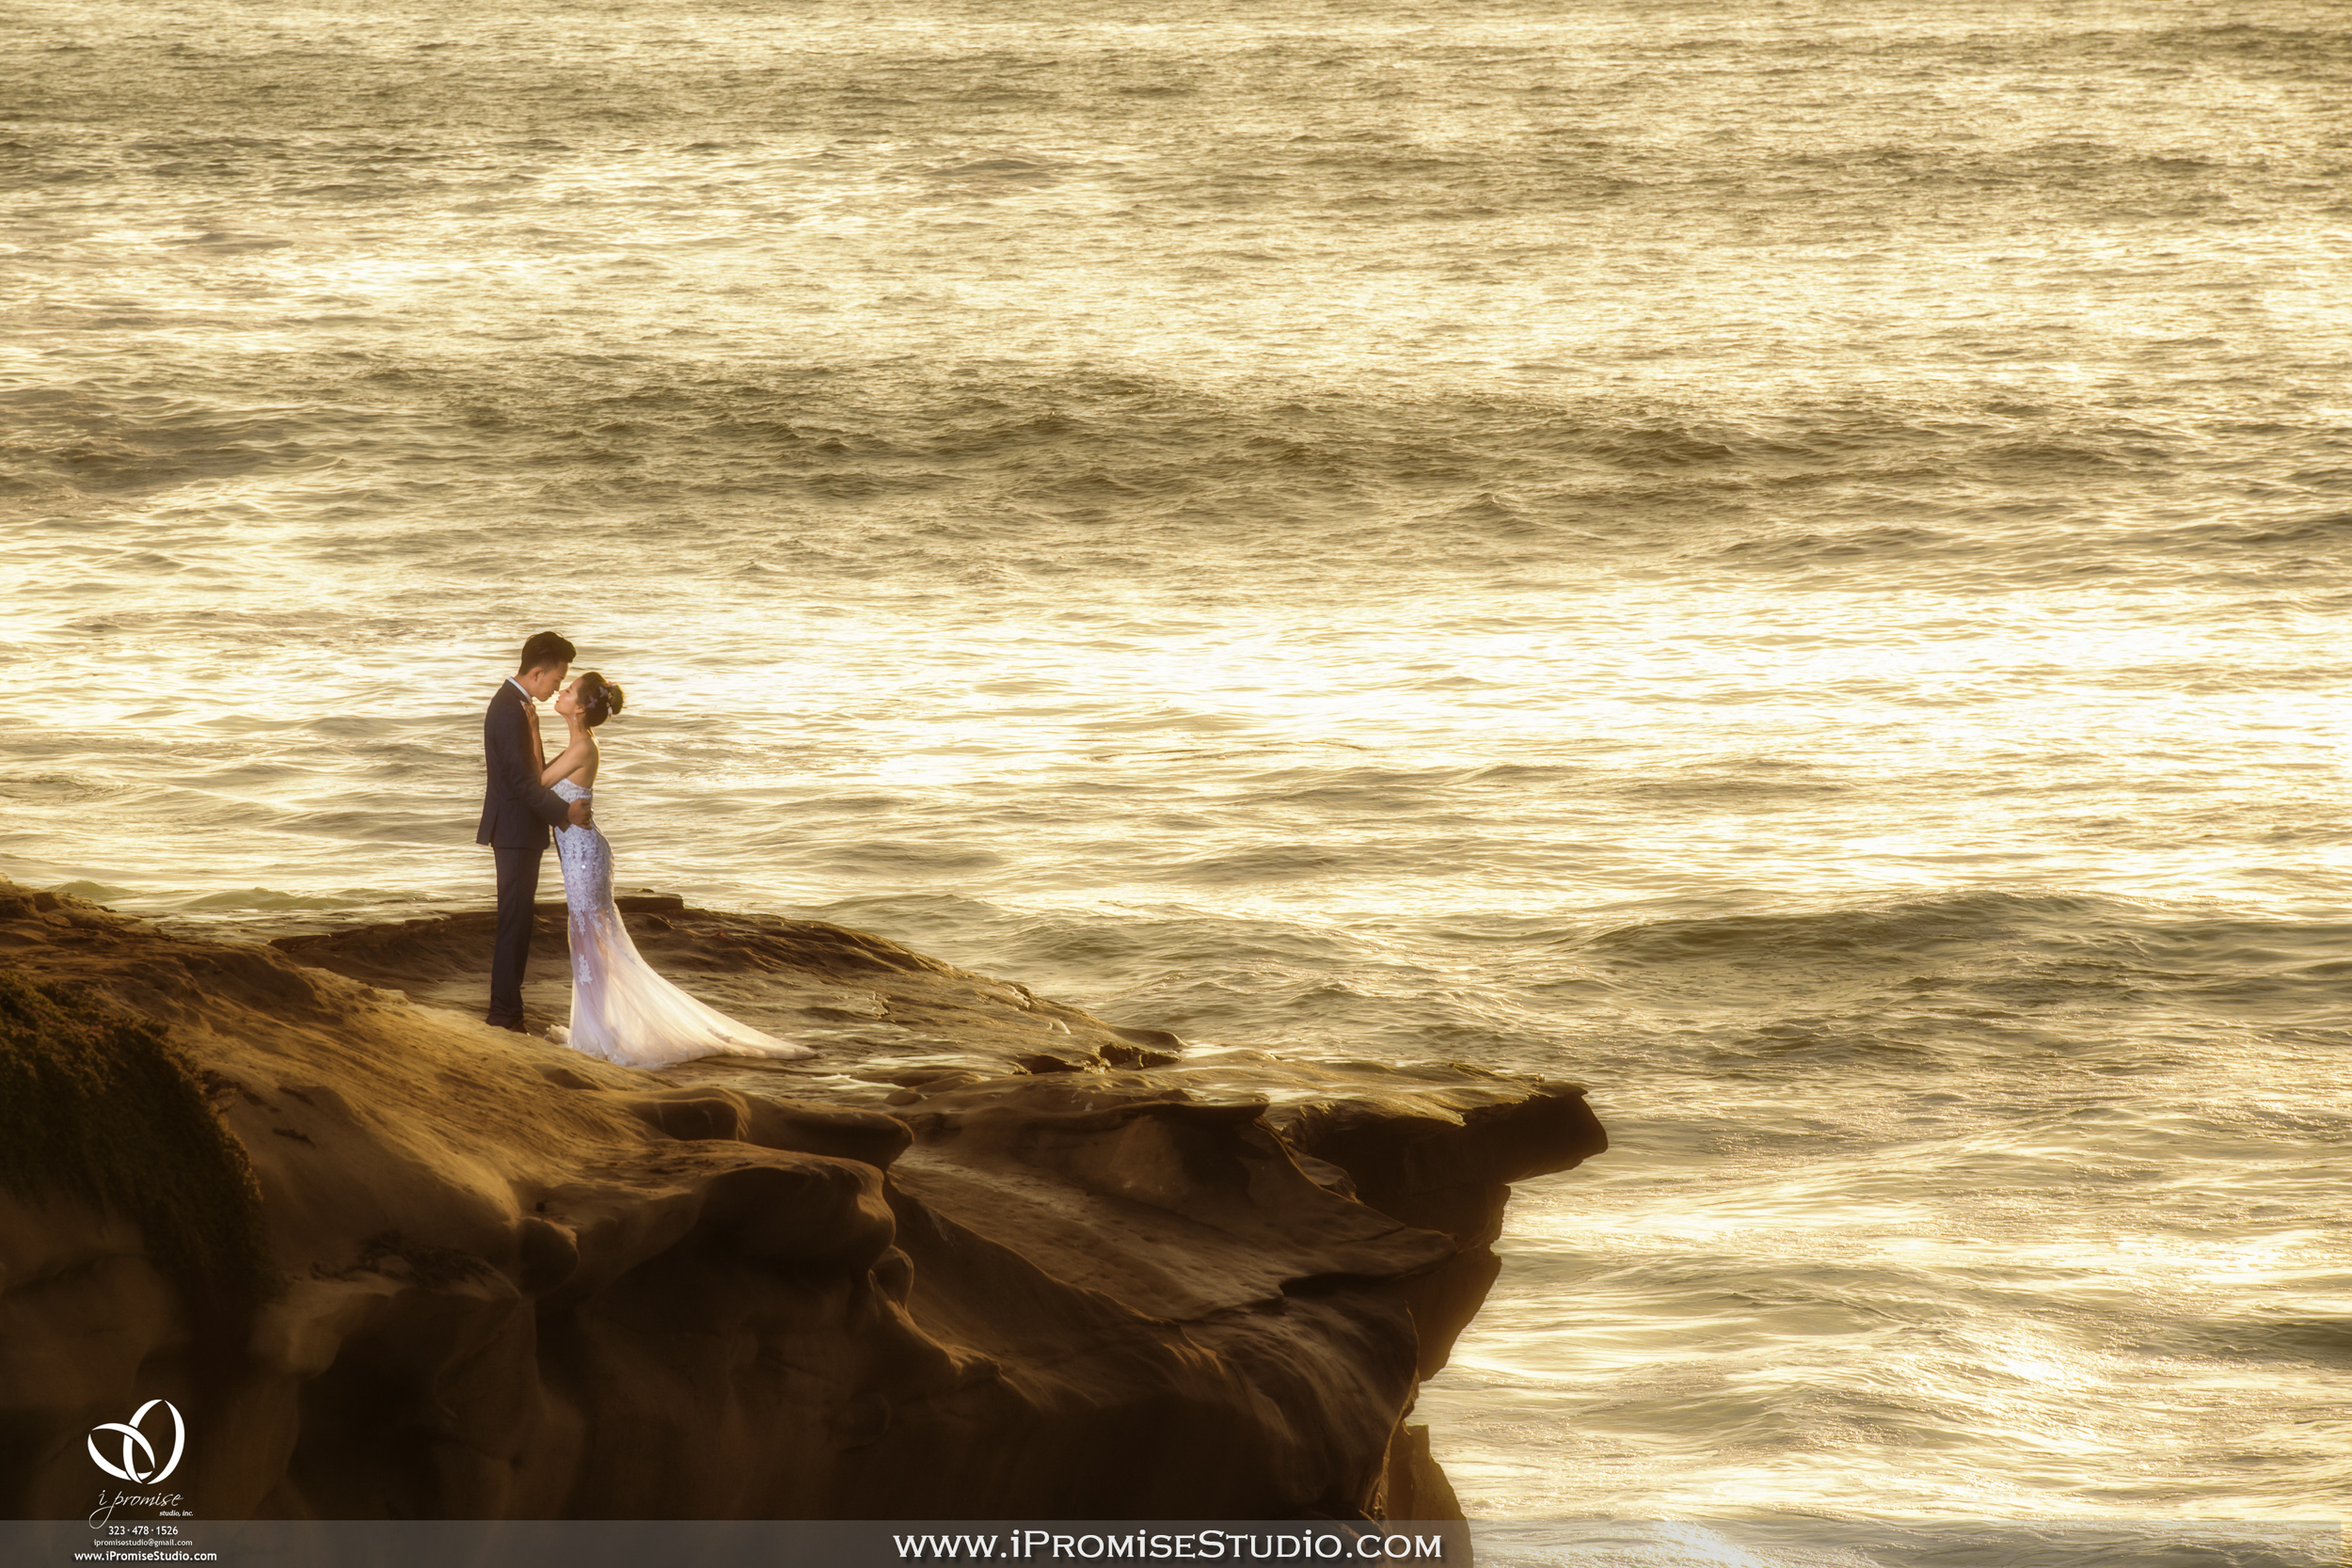 SanDiego La Jolla beach-engagement wedding 02.JPG